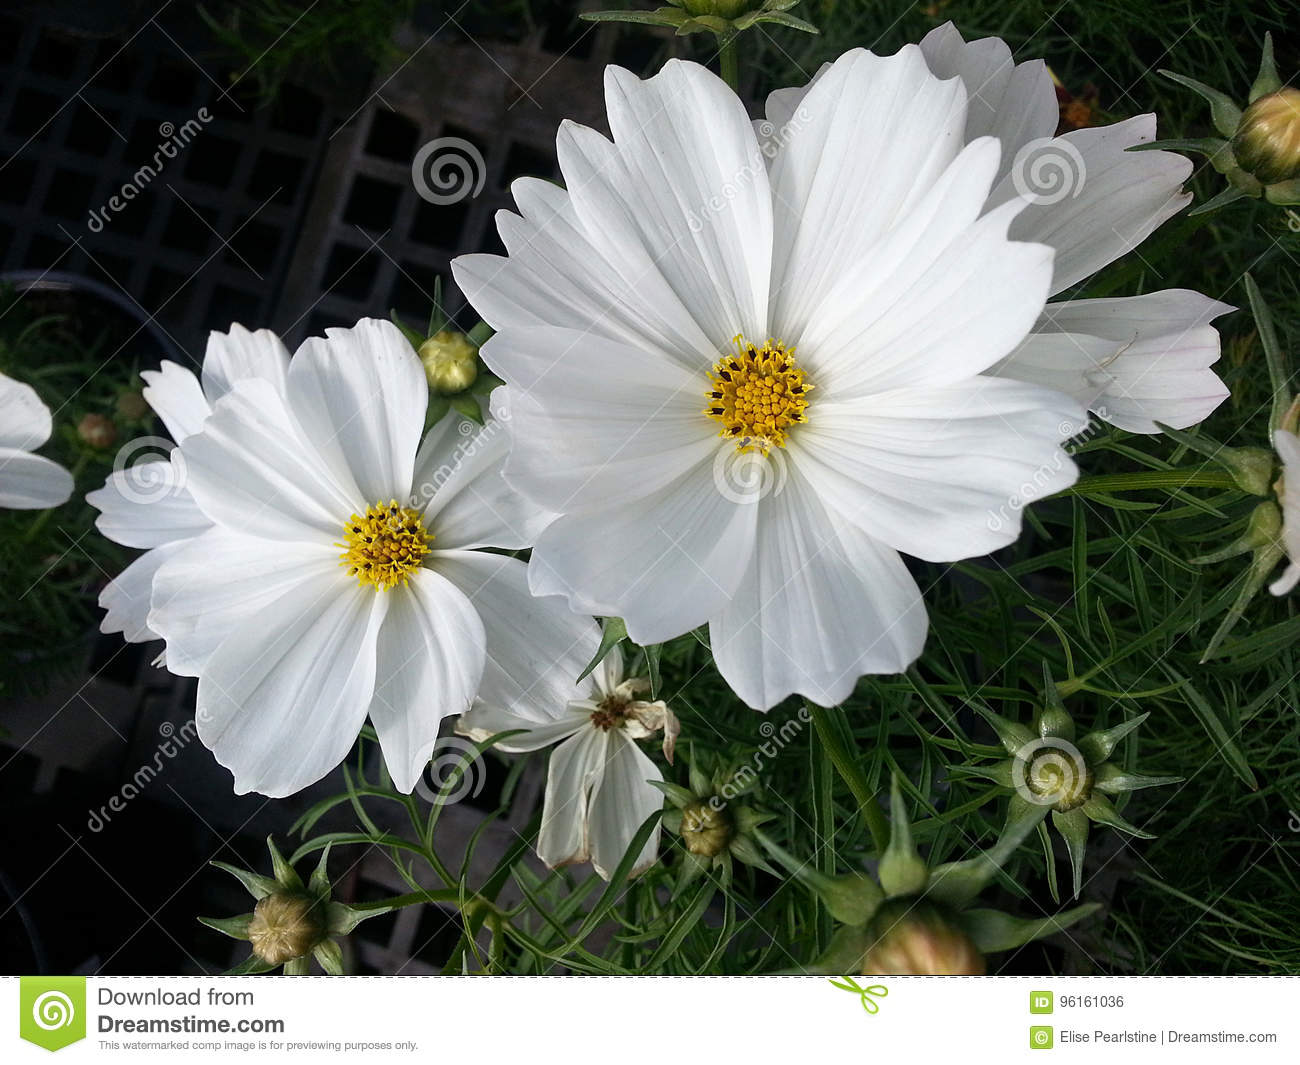 Cosmos Flower Composite With White Petals And Bright Yellow Center